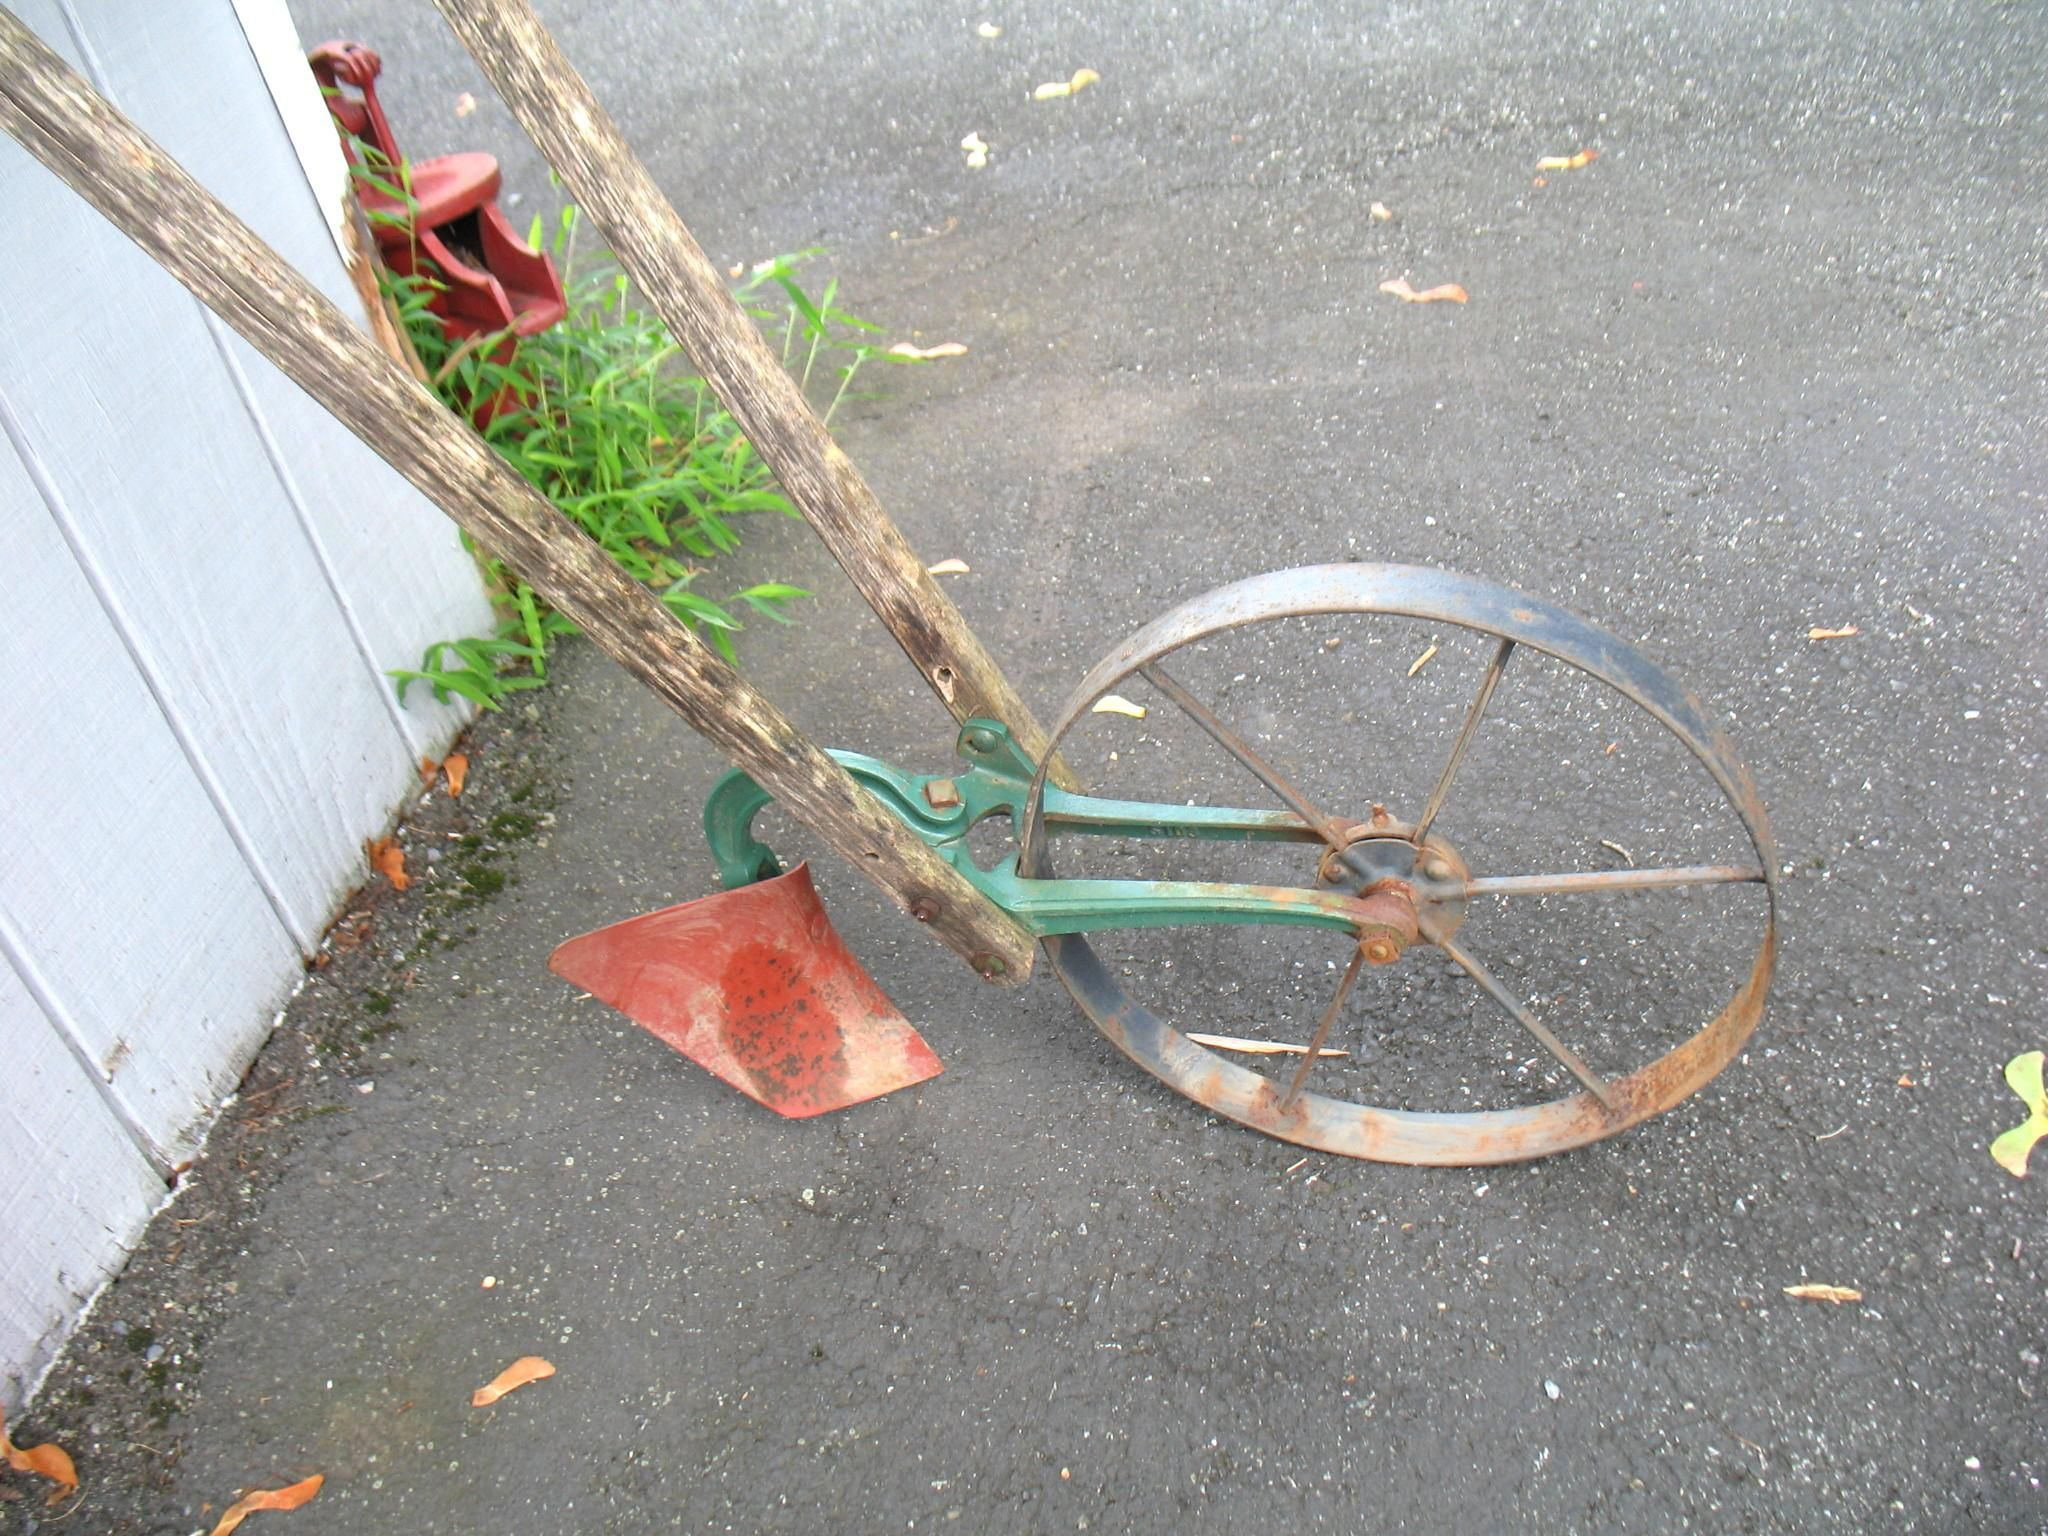 Antique Planet Jr. Push Hoe Or Plow Cultivator Agriculture Tool